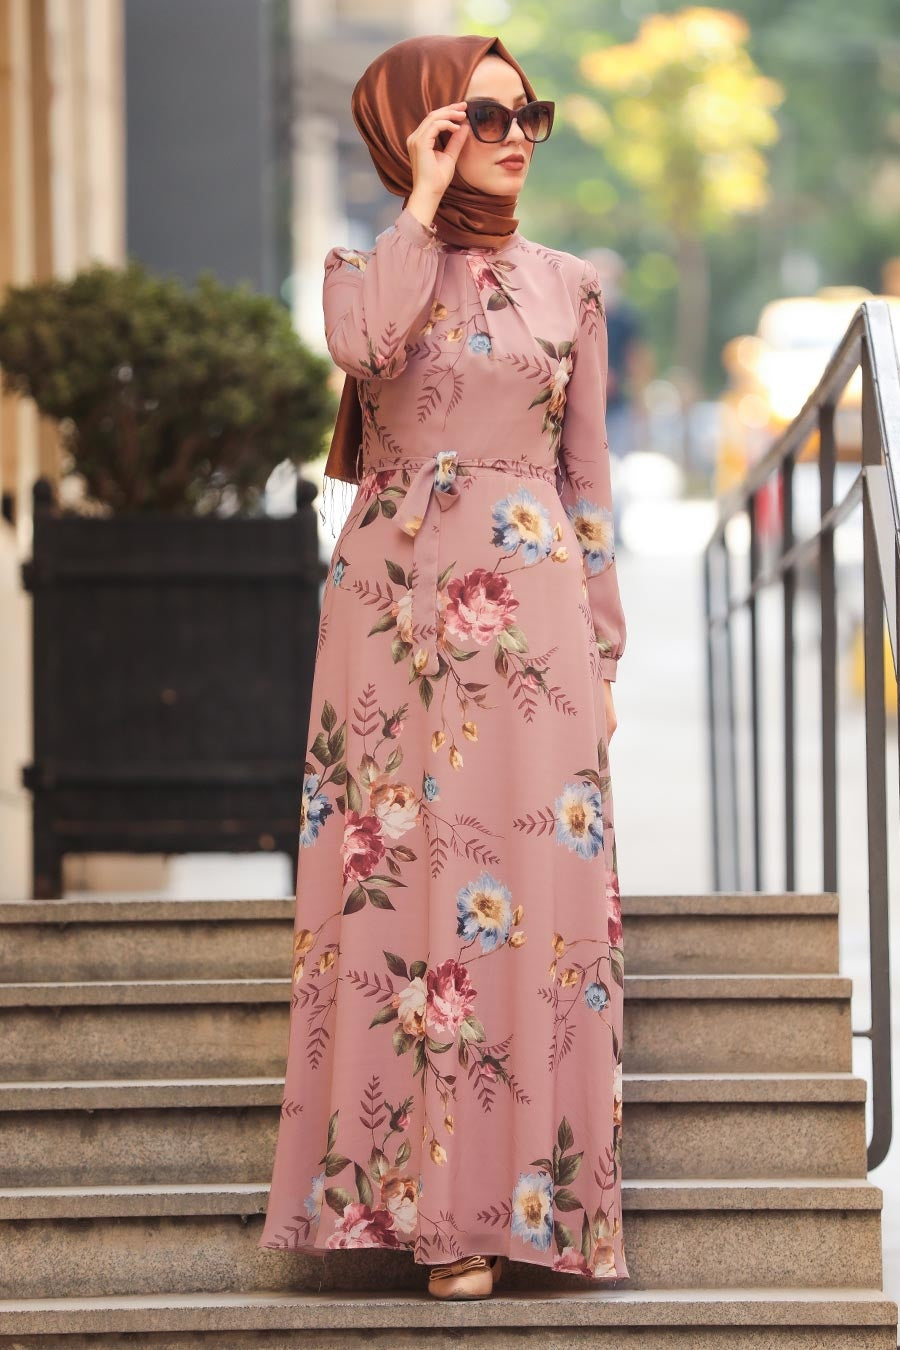 Women's Floral Pattern Powder Rose Modest Dress